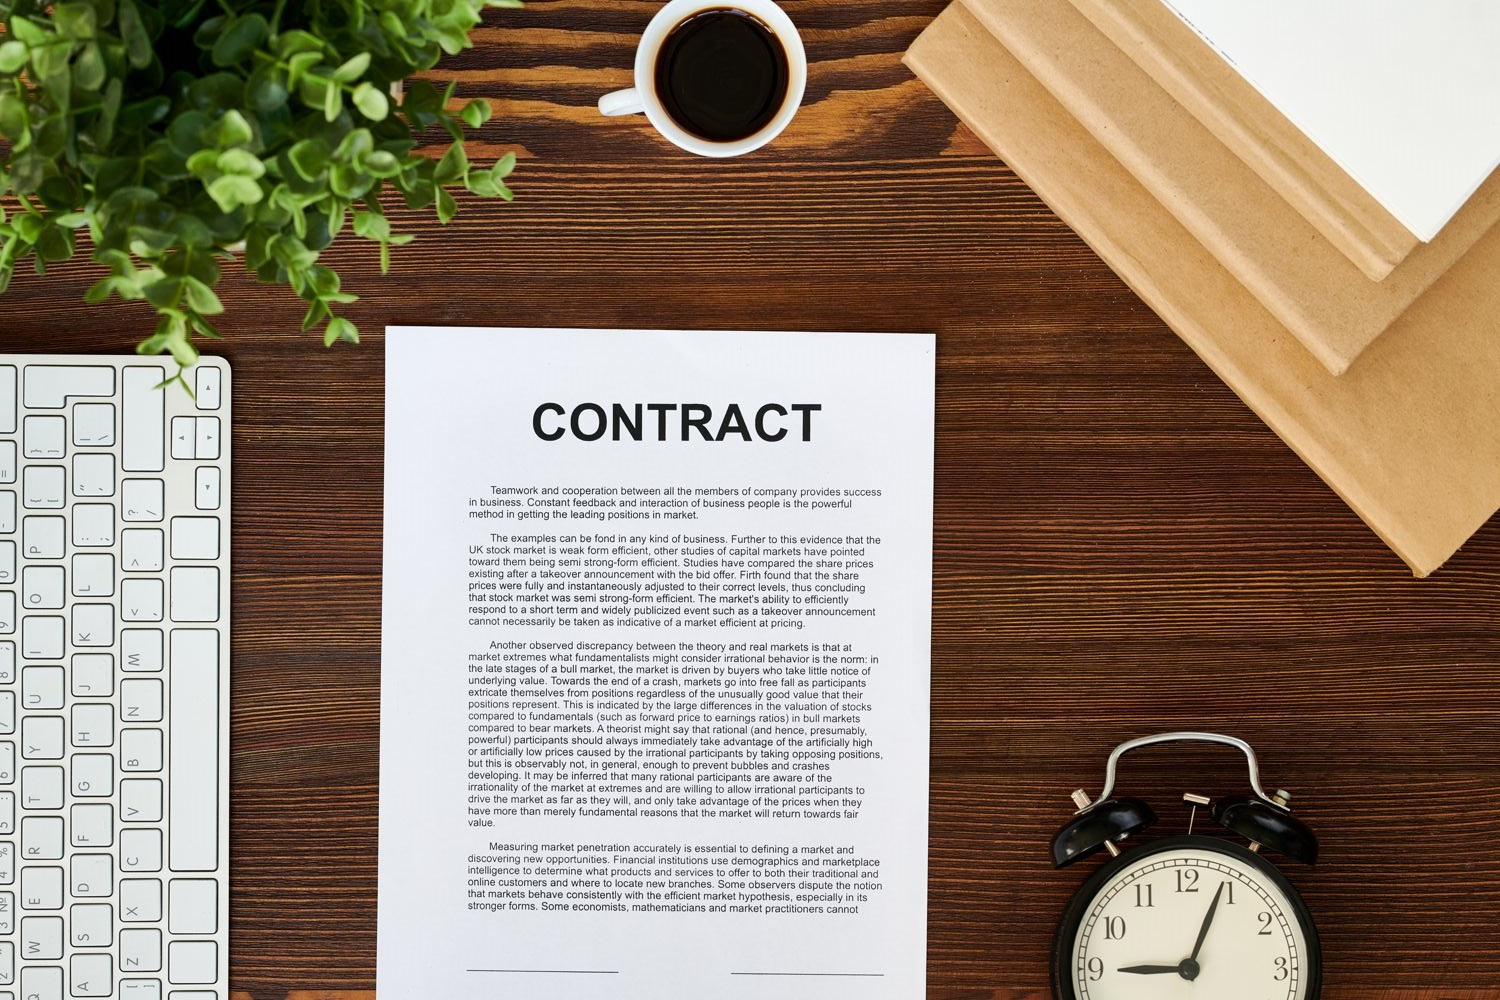 Five perspectives on the design of contract management applications on low-code platforms